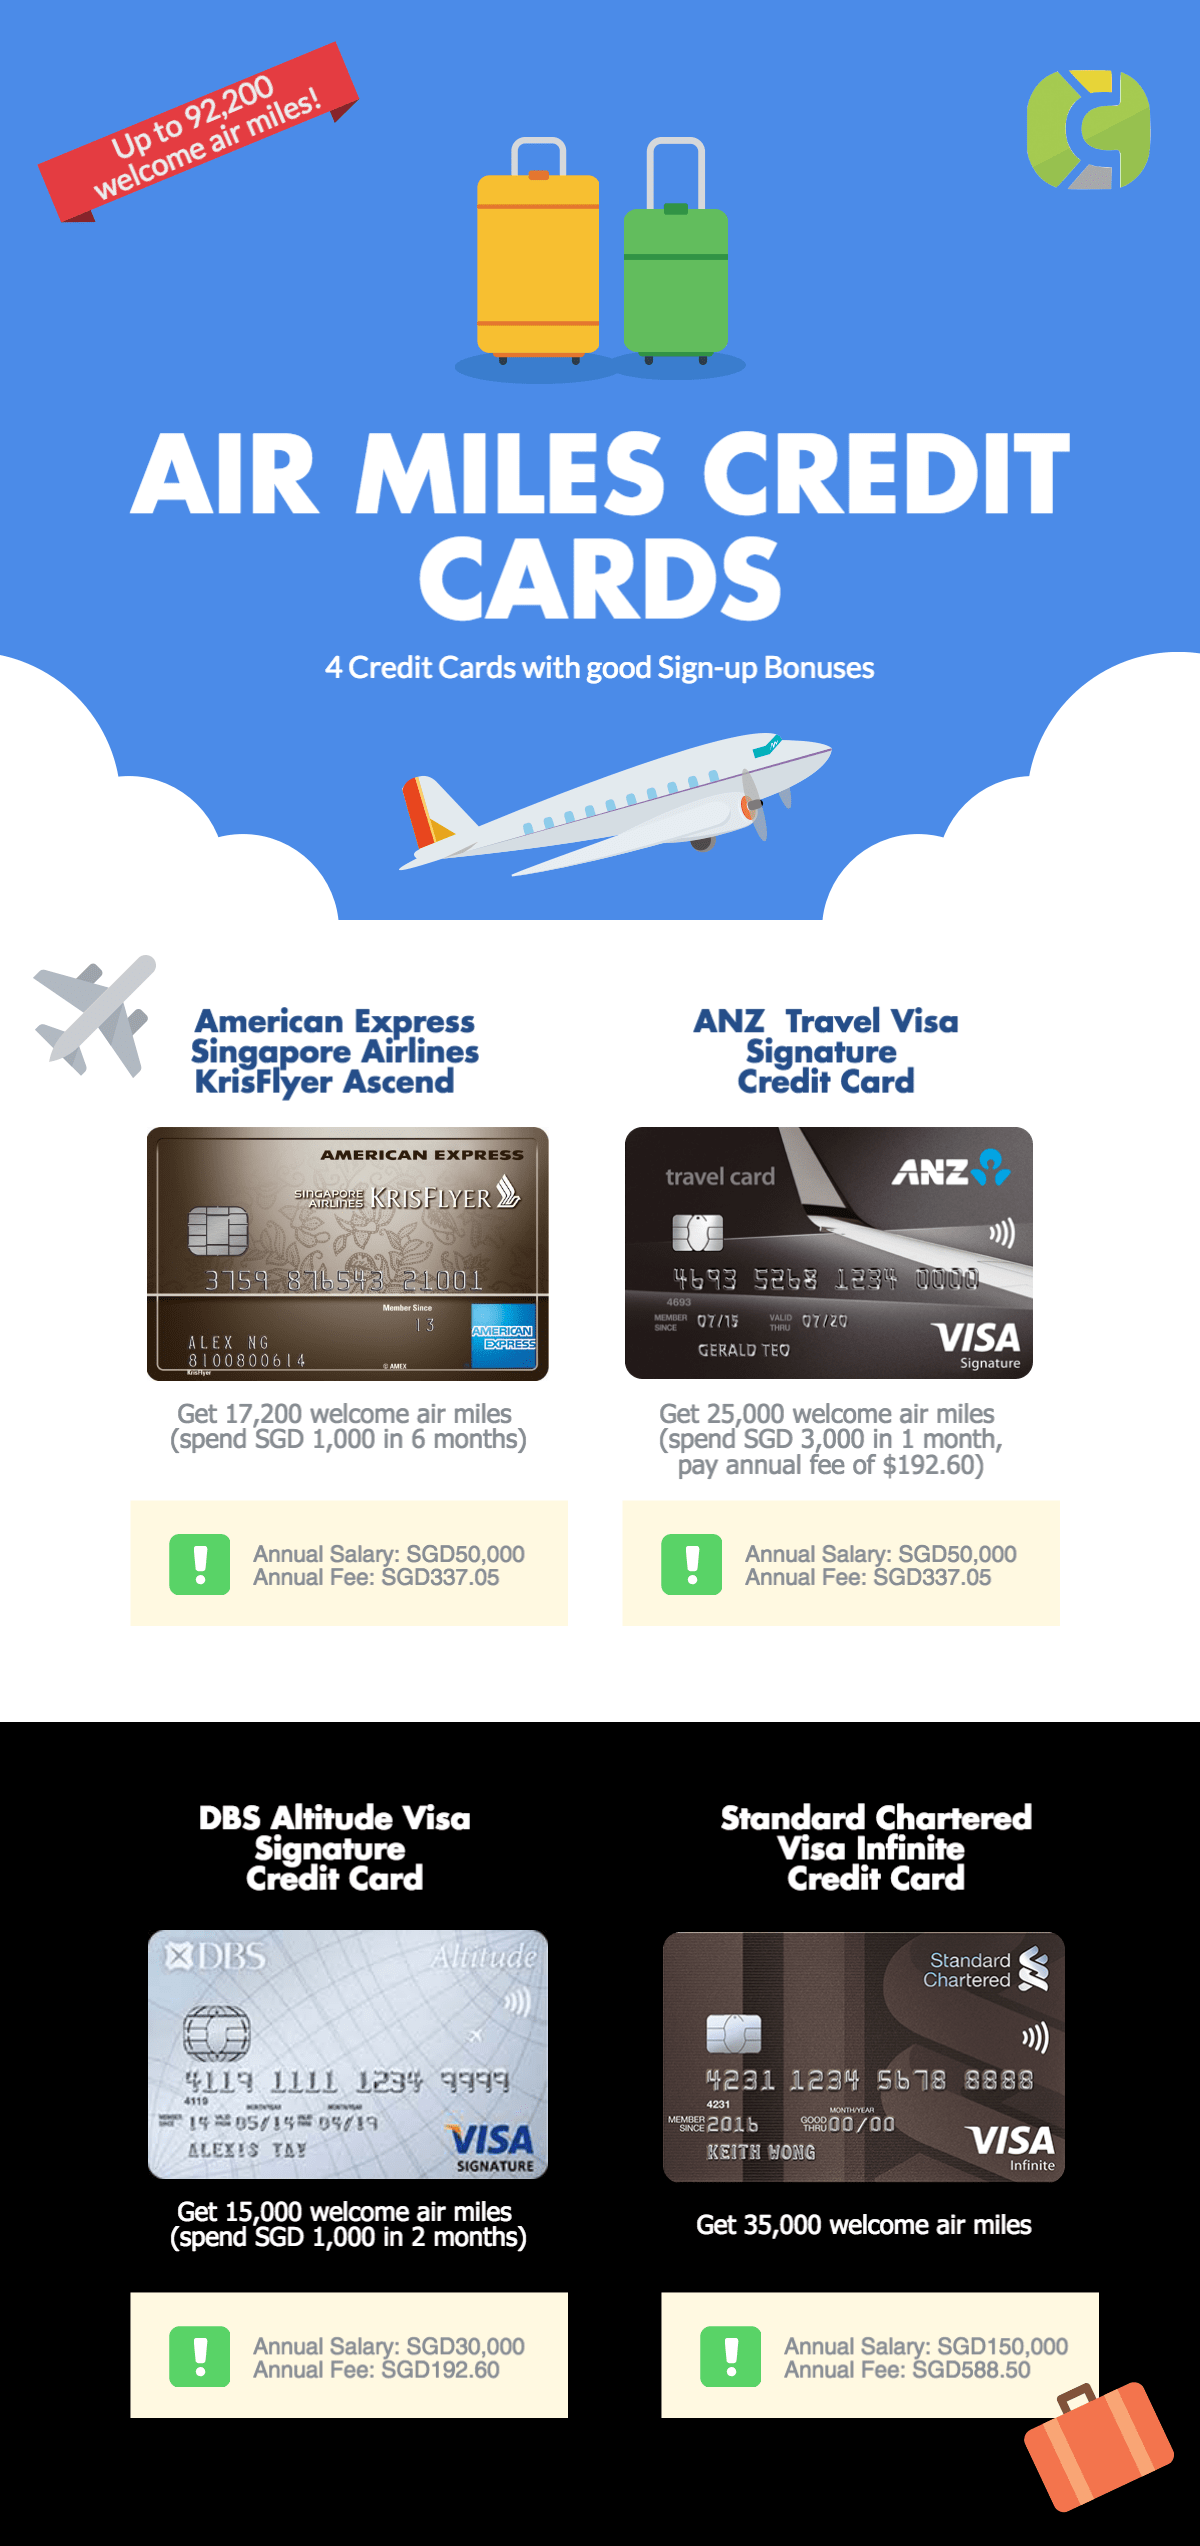 4 Credit Cards with good signup bonuses